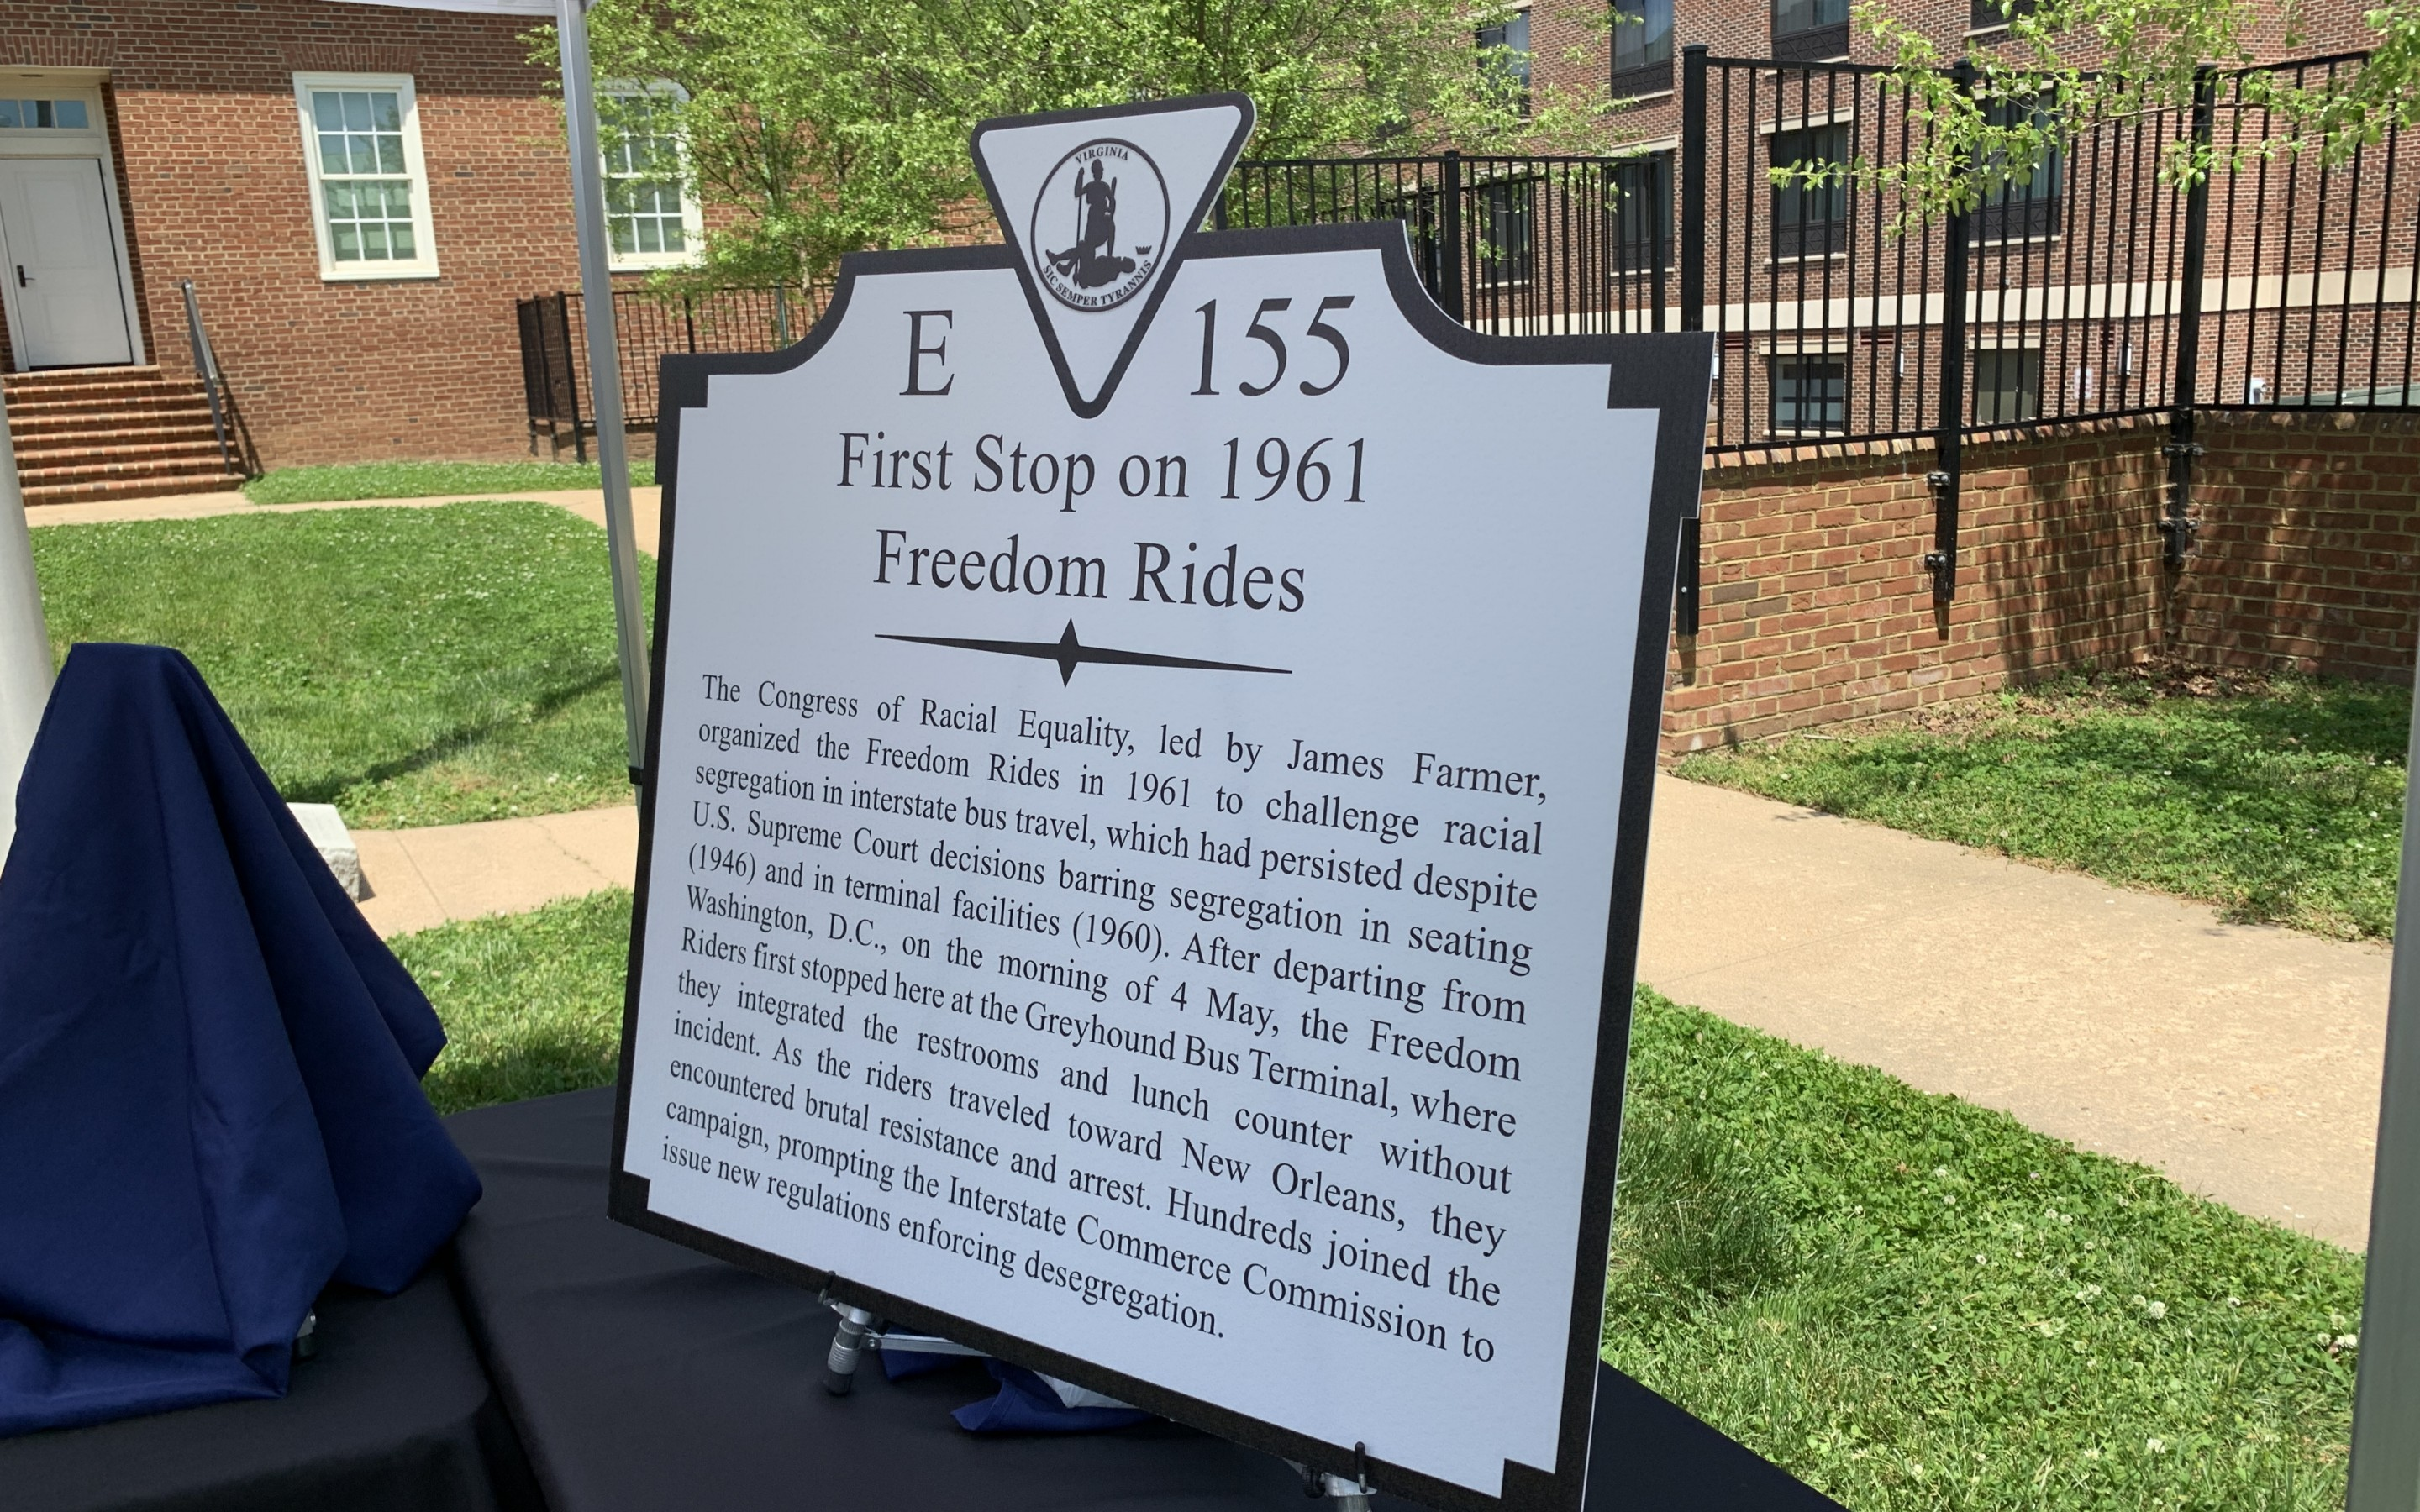 PHOTOS:   Remembering the Freedom Riders in Fredericksburg